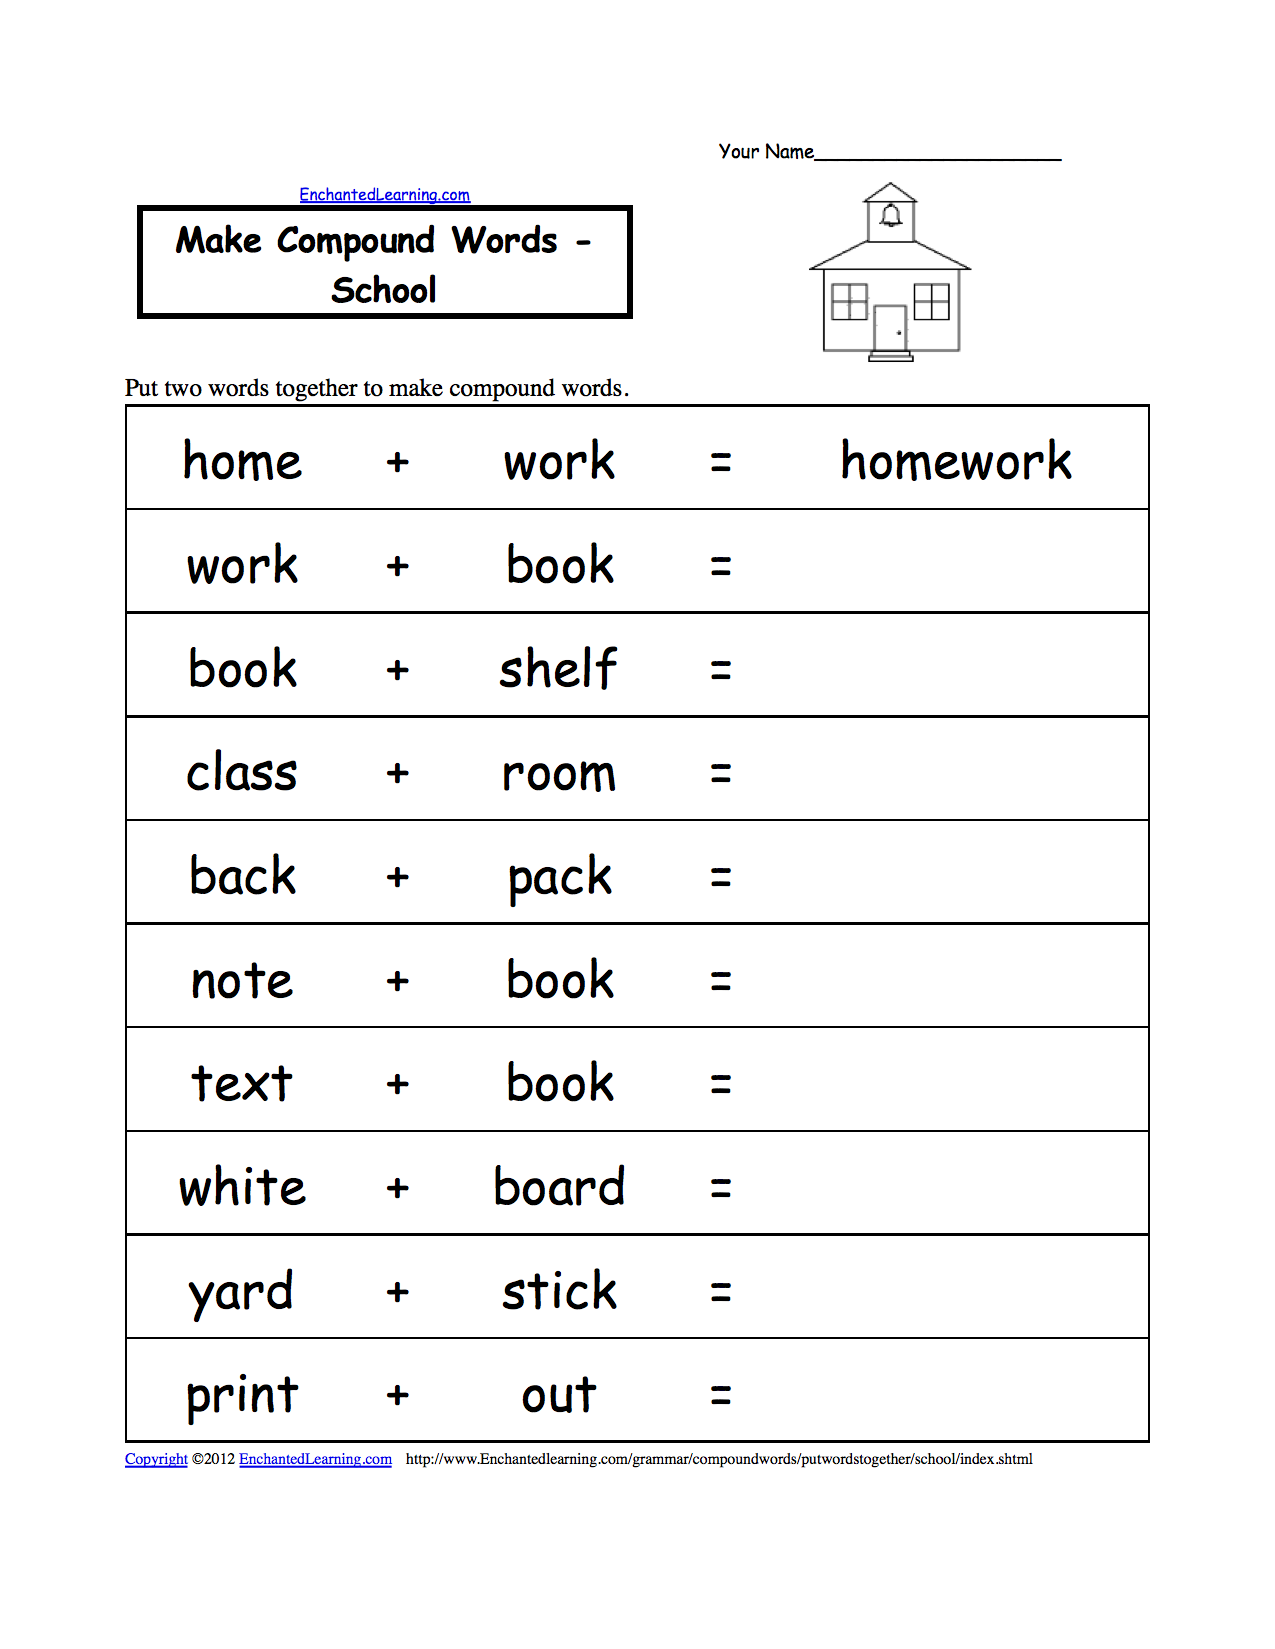 Worksheets School Worksheets Printable make compound words printable worksheets enchantedlearning com school worksheet